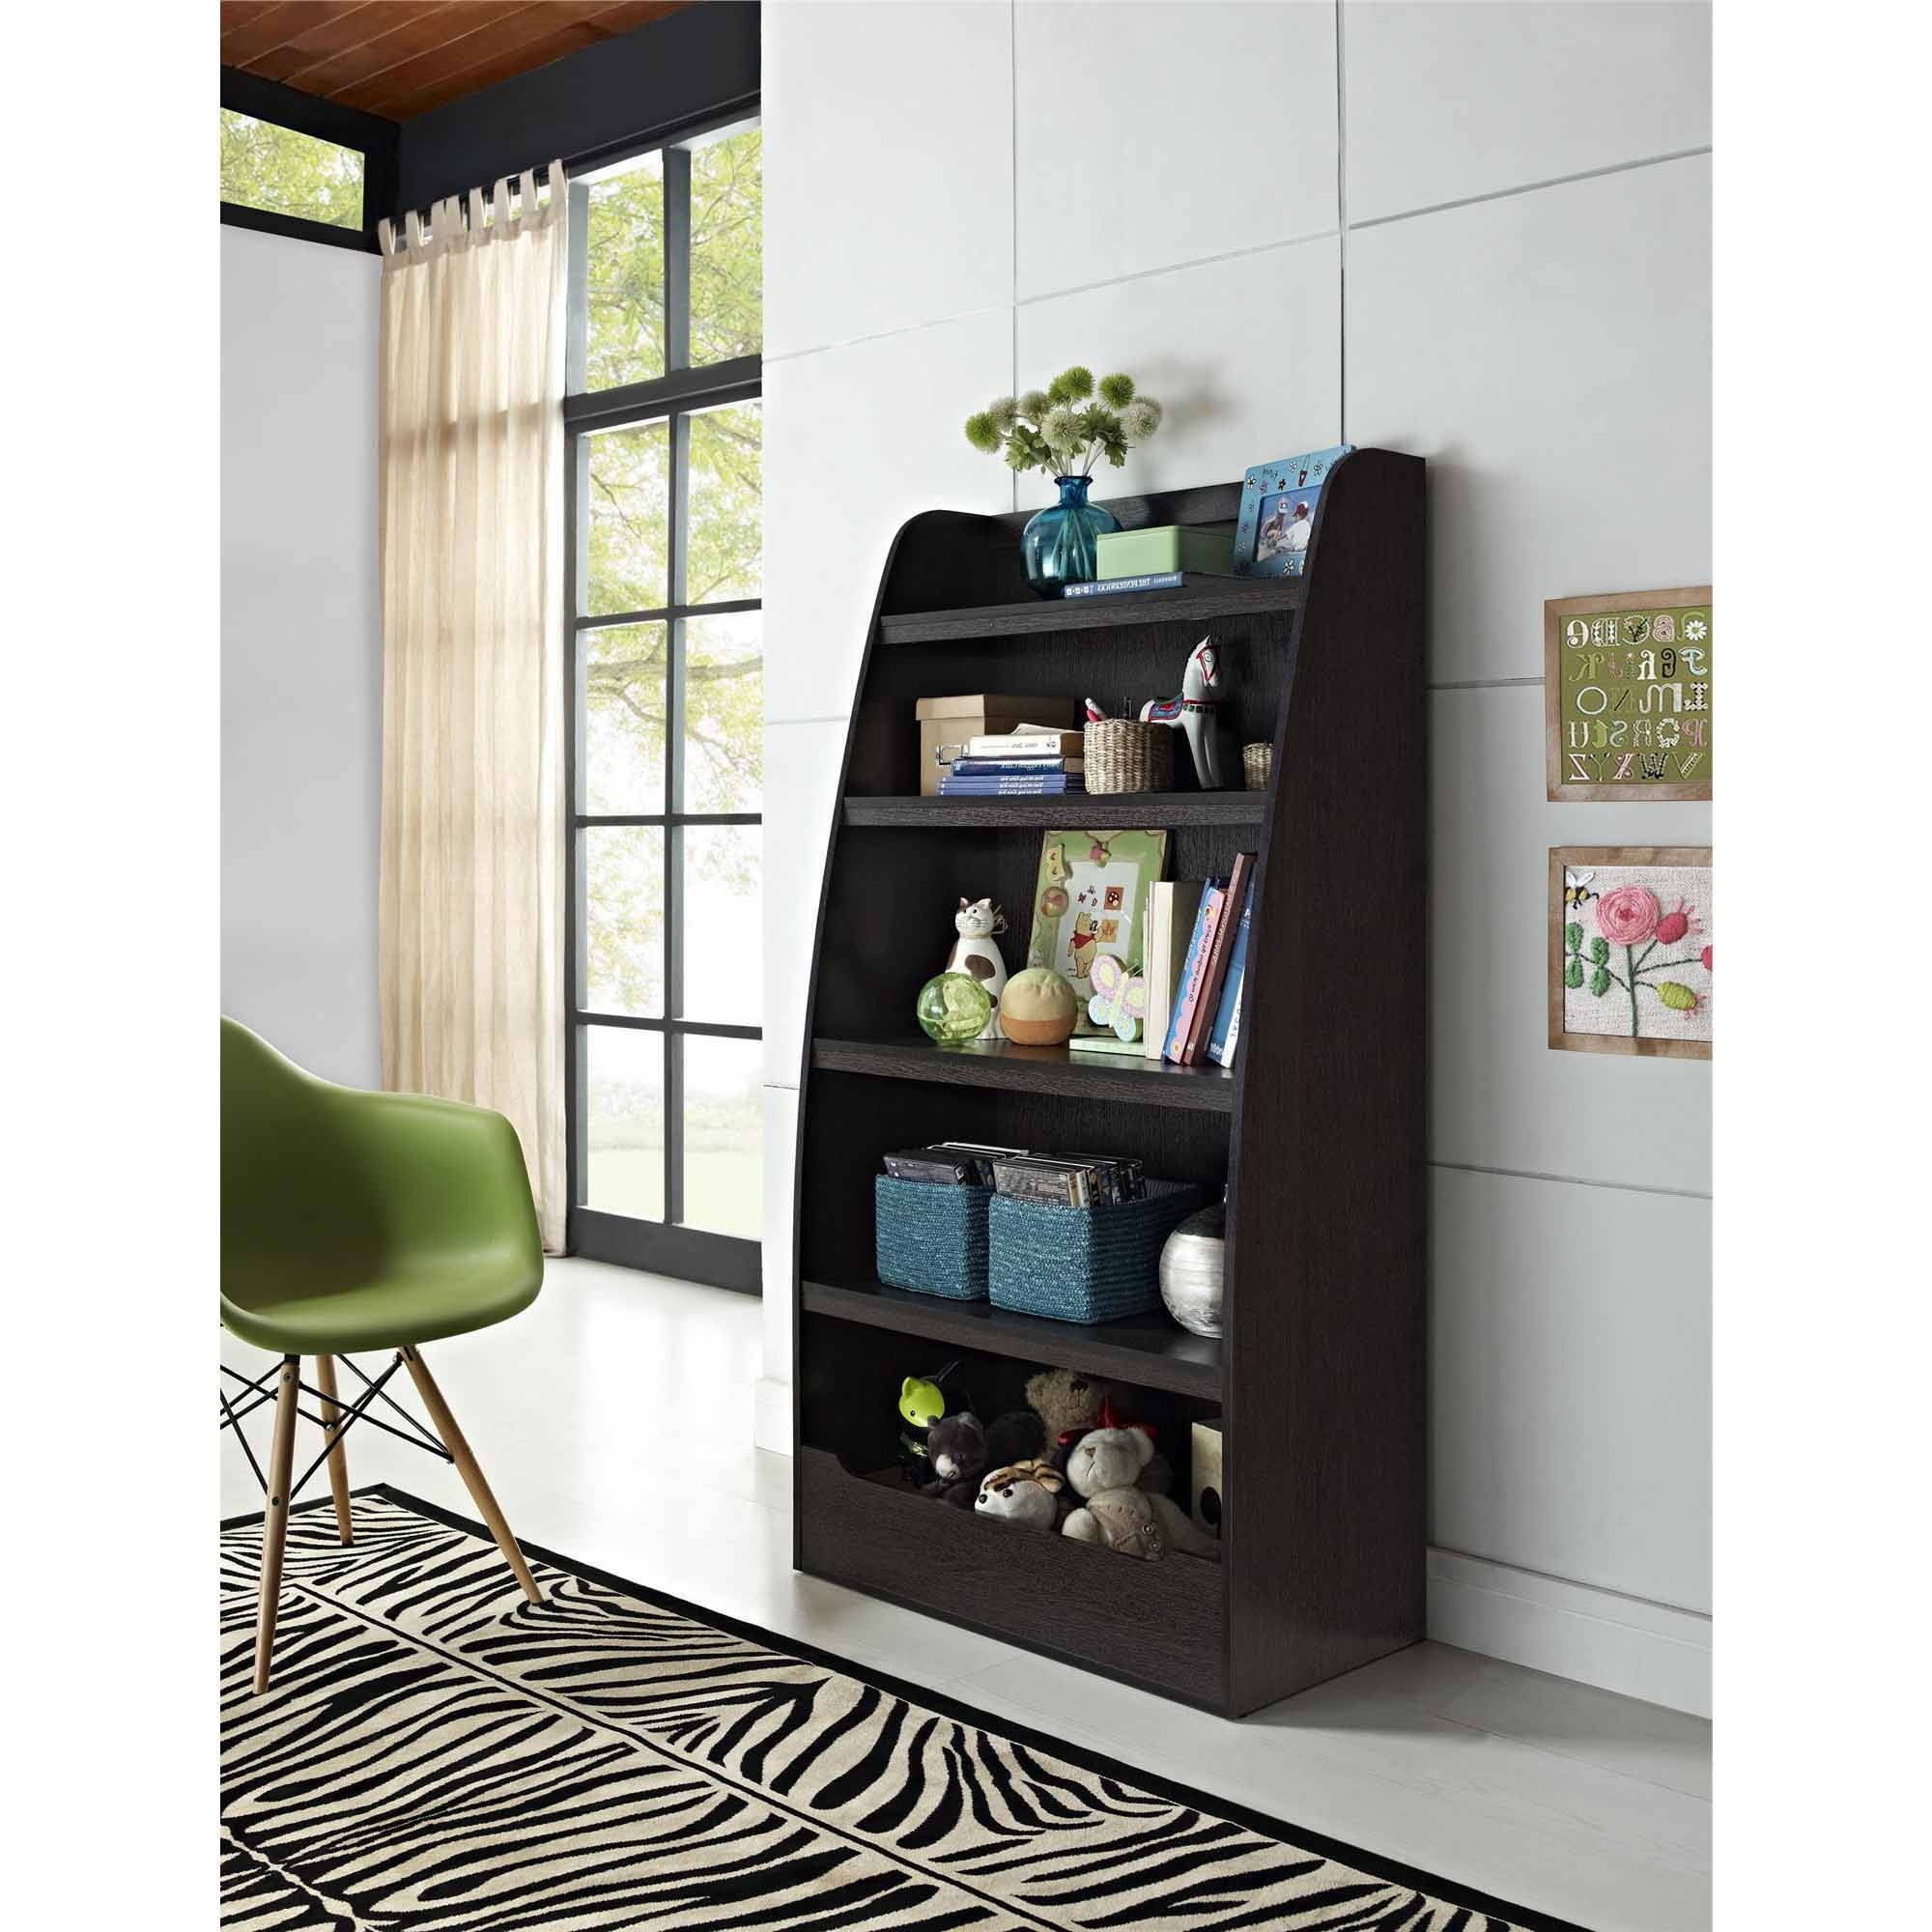 4 Shelf Bookcases For Well Known Ameriwood Home Mia Kids 4 Shelf Bookcase, Espresso – Walmart (Gallery 9 of 15)